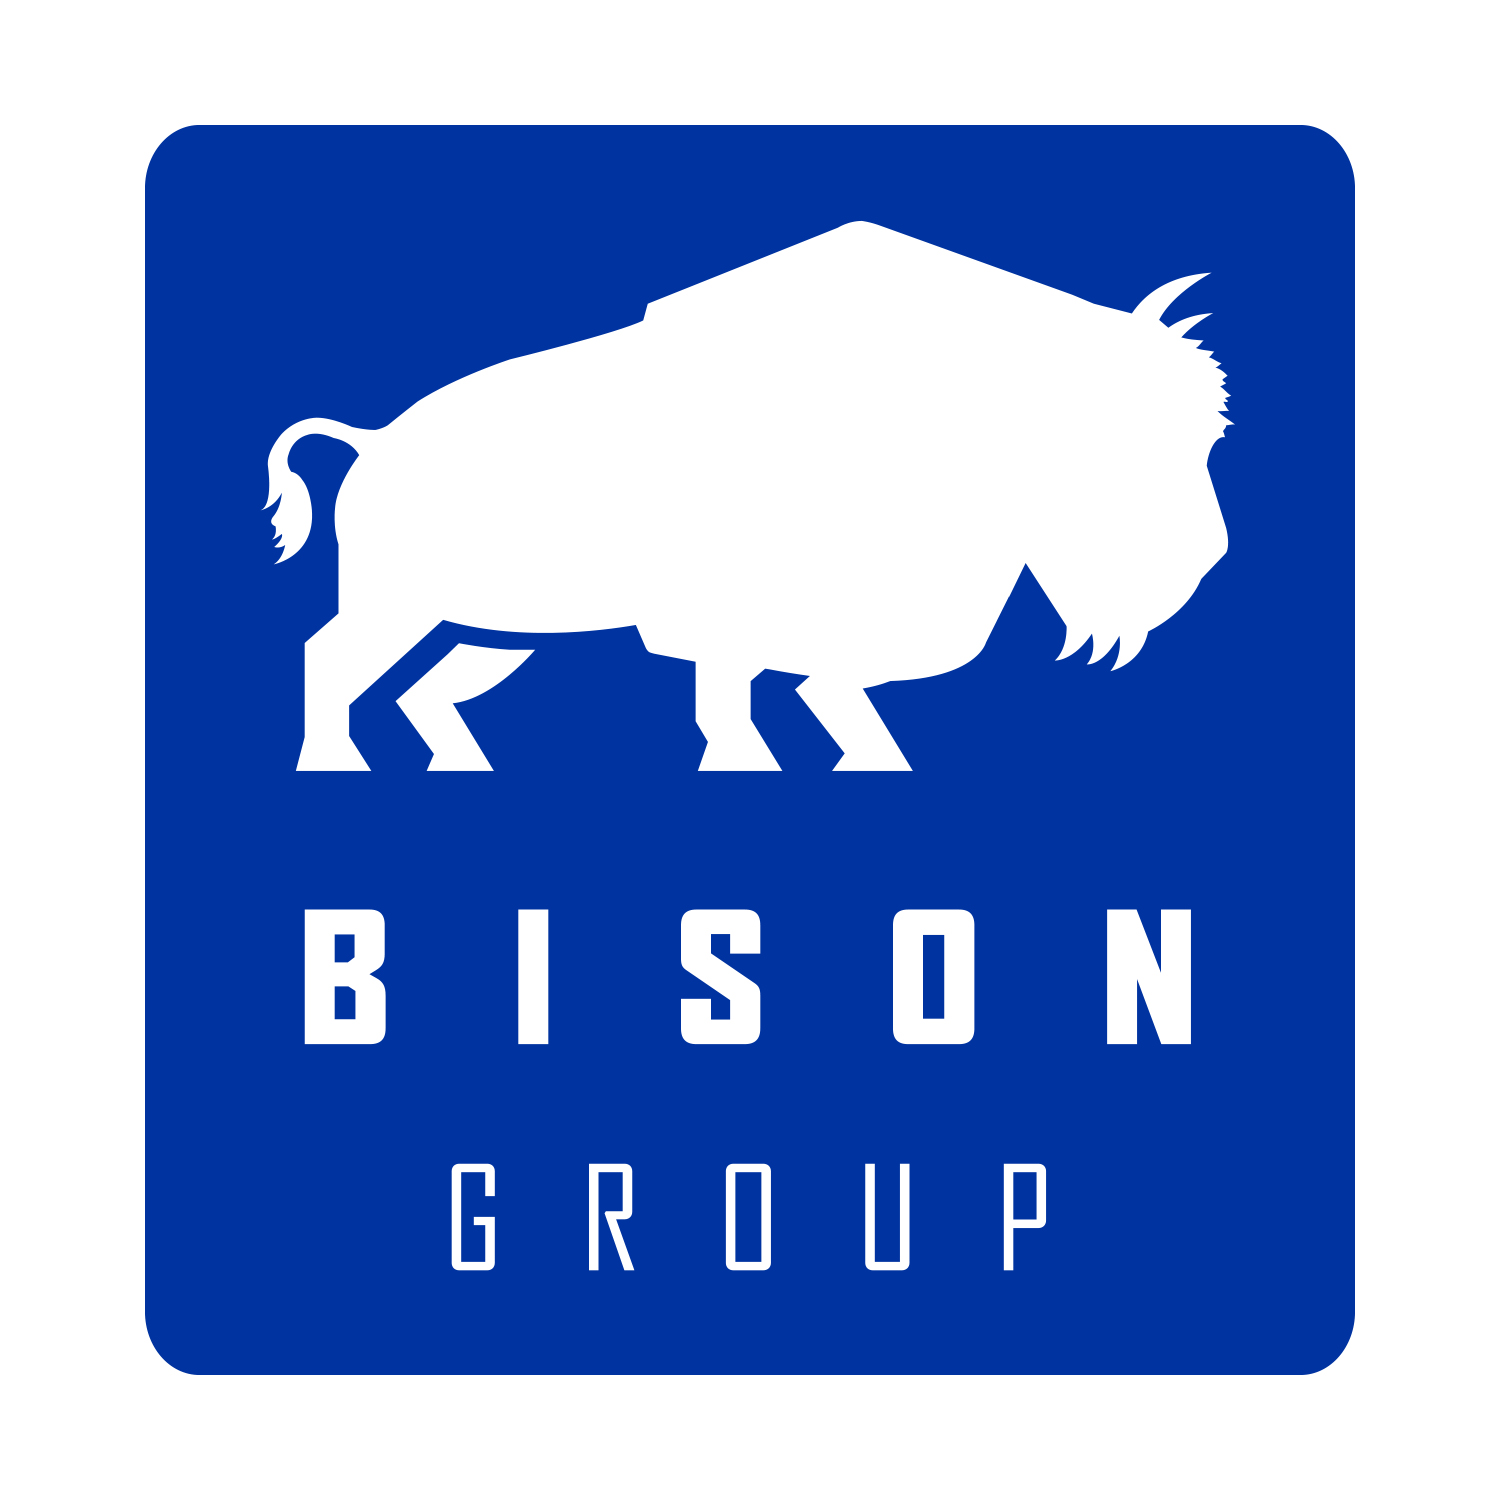 The Bison Group